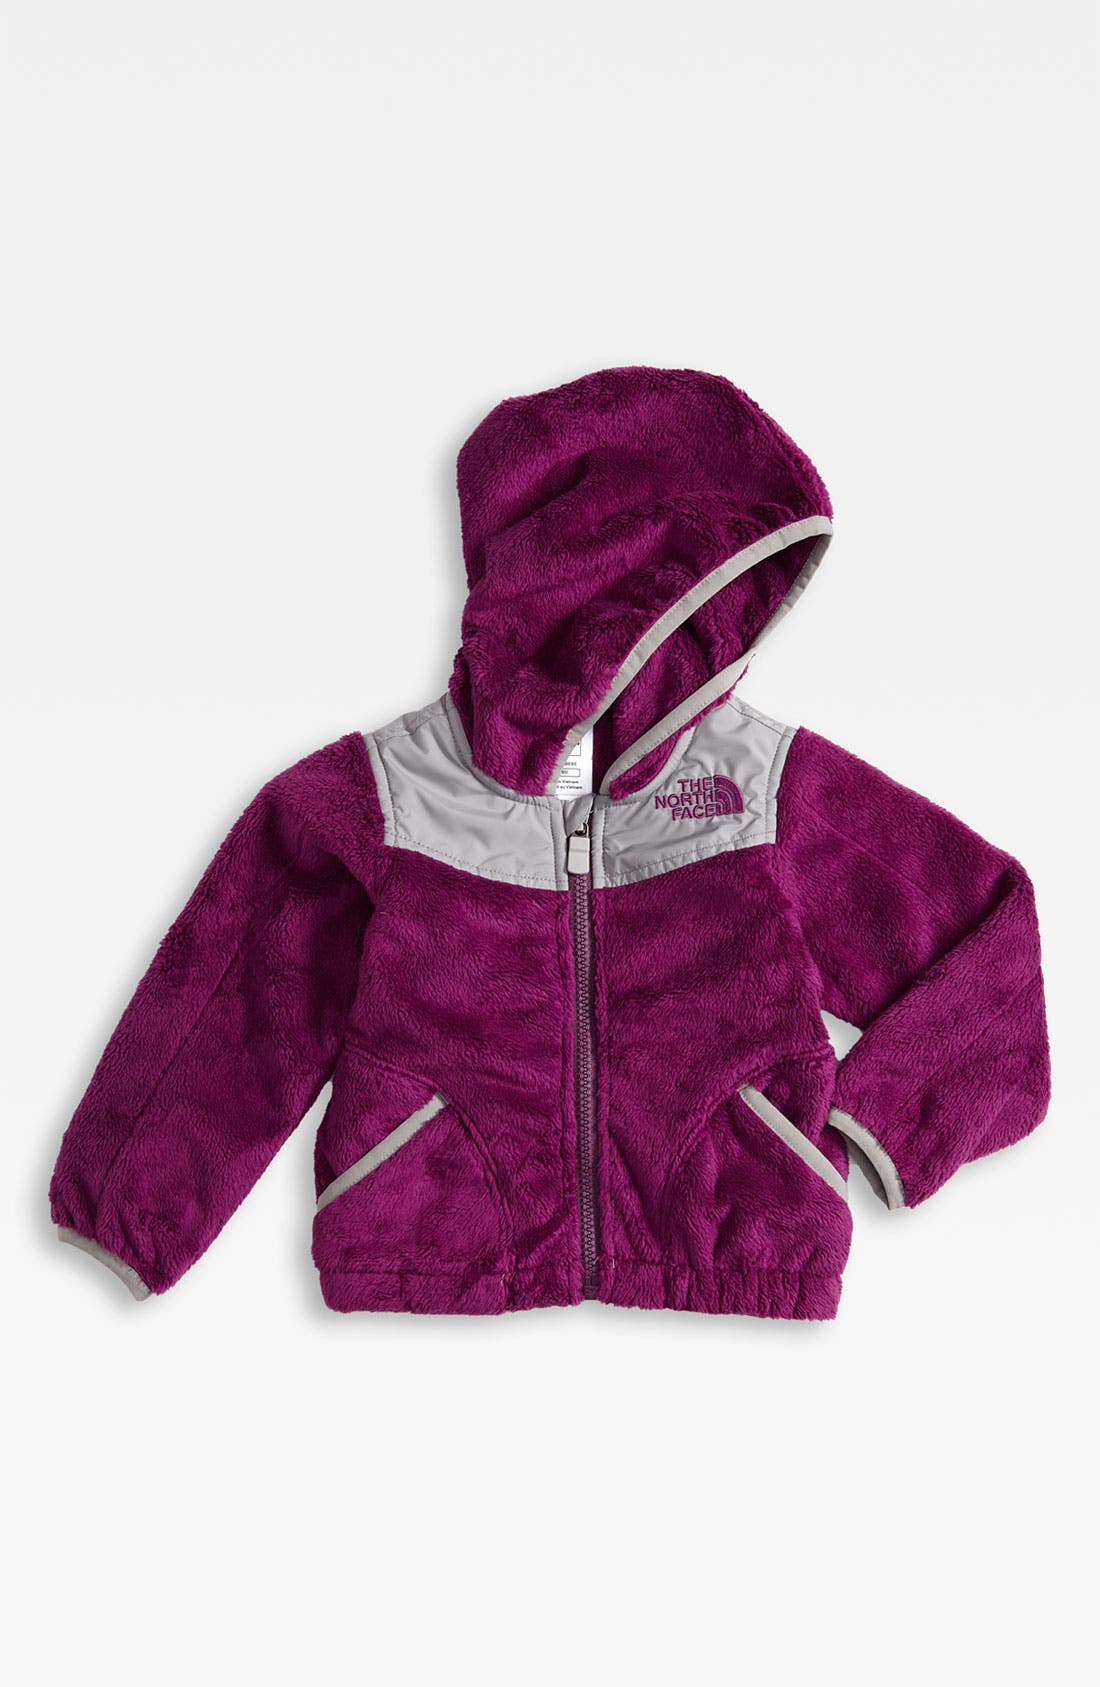 Alternate Image 1 Selected - The North Face 'Oso' Hooded Fleece Jacket (Baby)